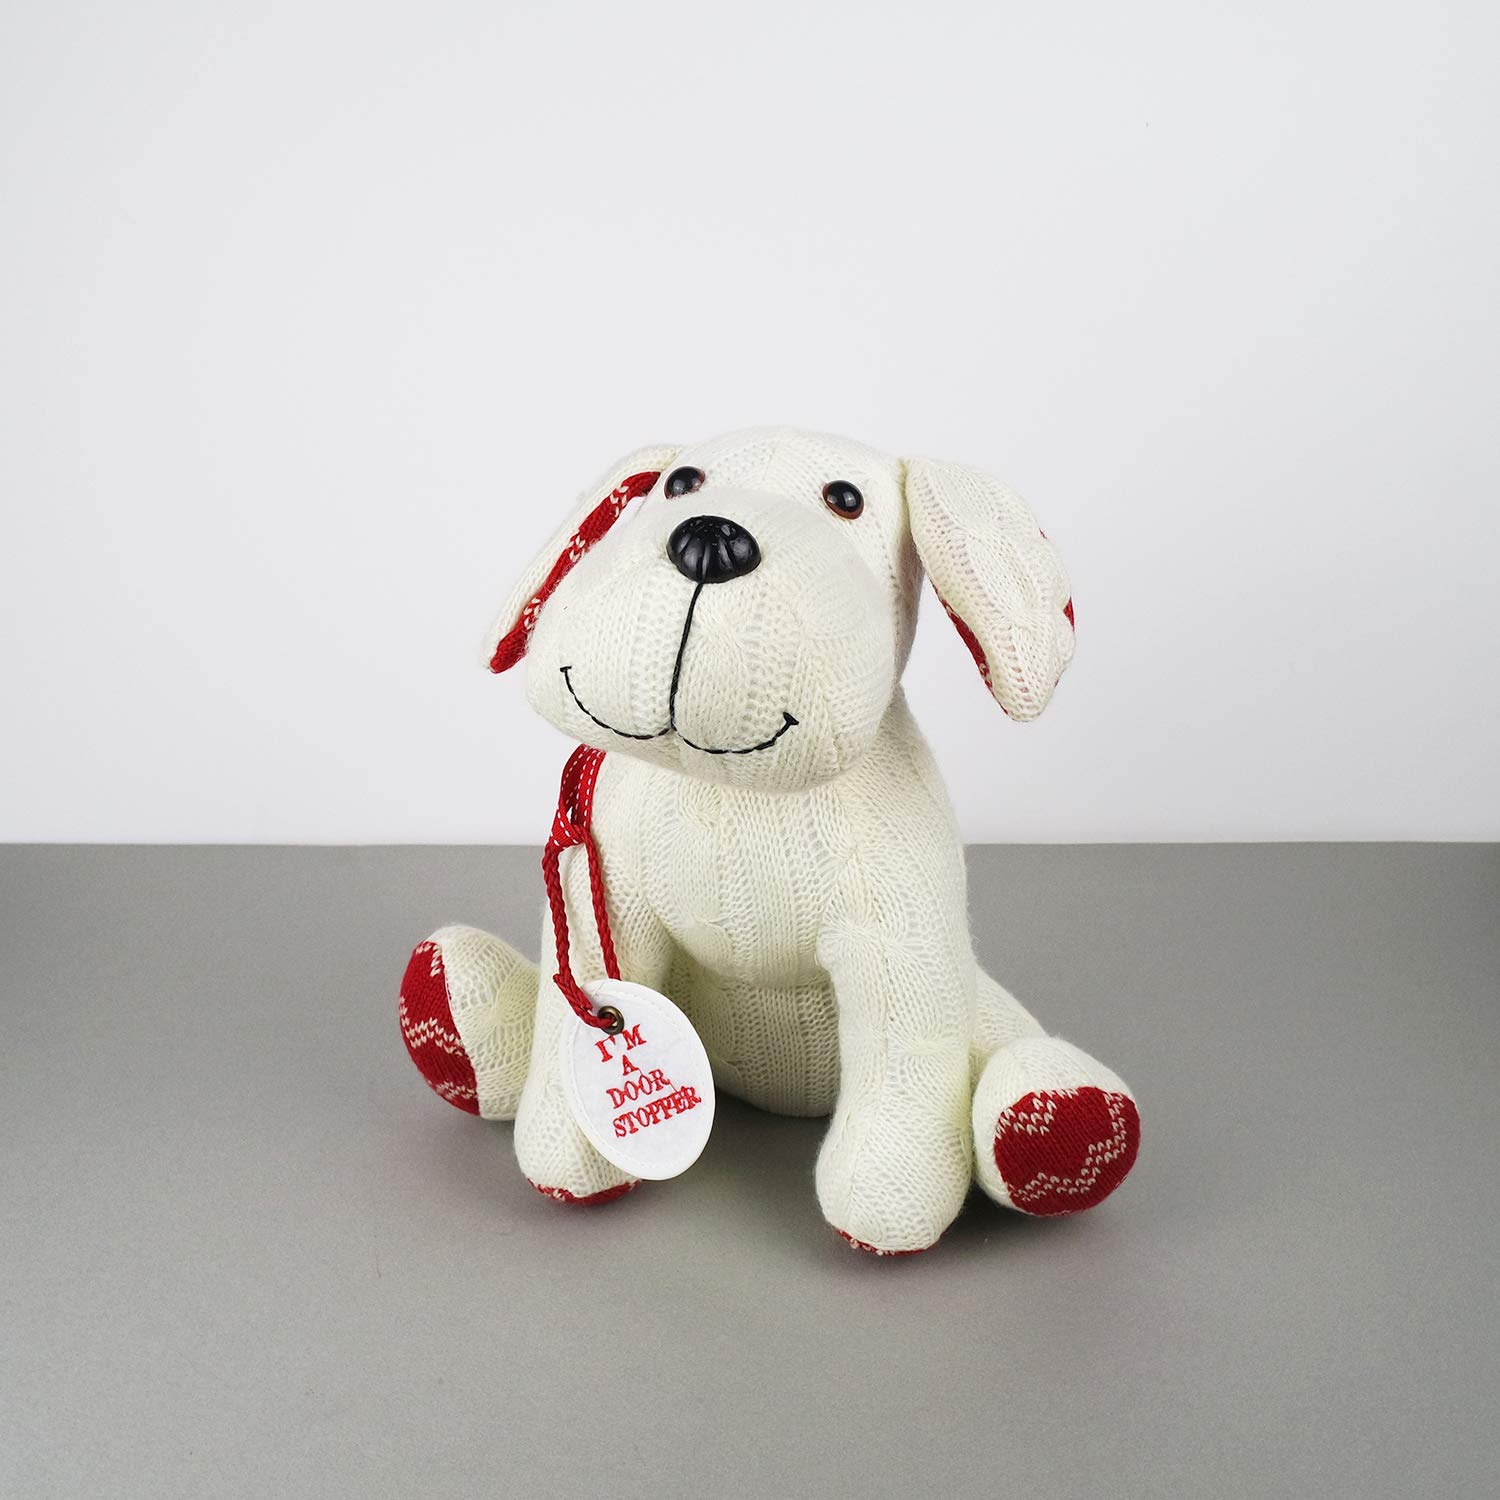 Stuffed Animal White Dog Door Stopper 1.73lb Home Decor Cable Knit Pattern by dwelling (Image #2)